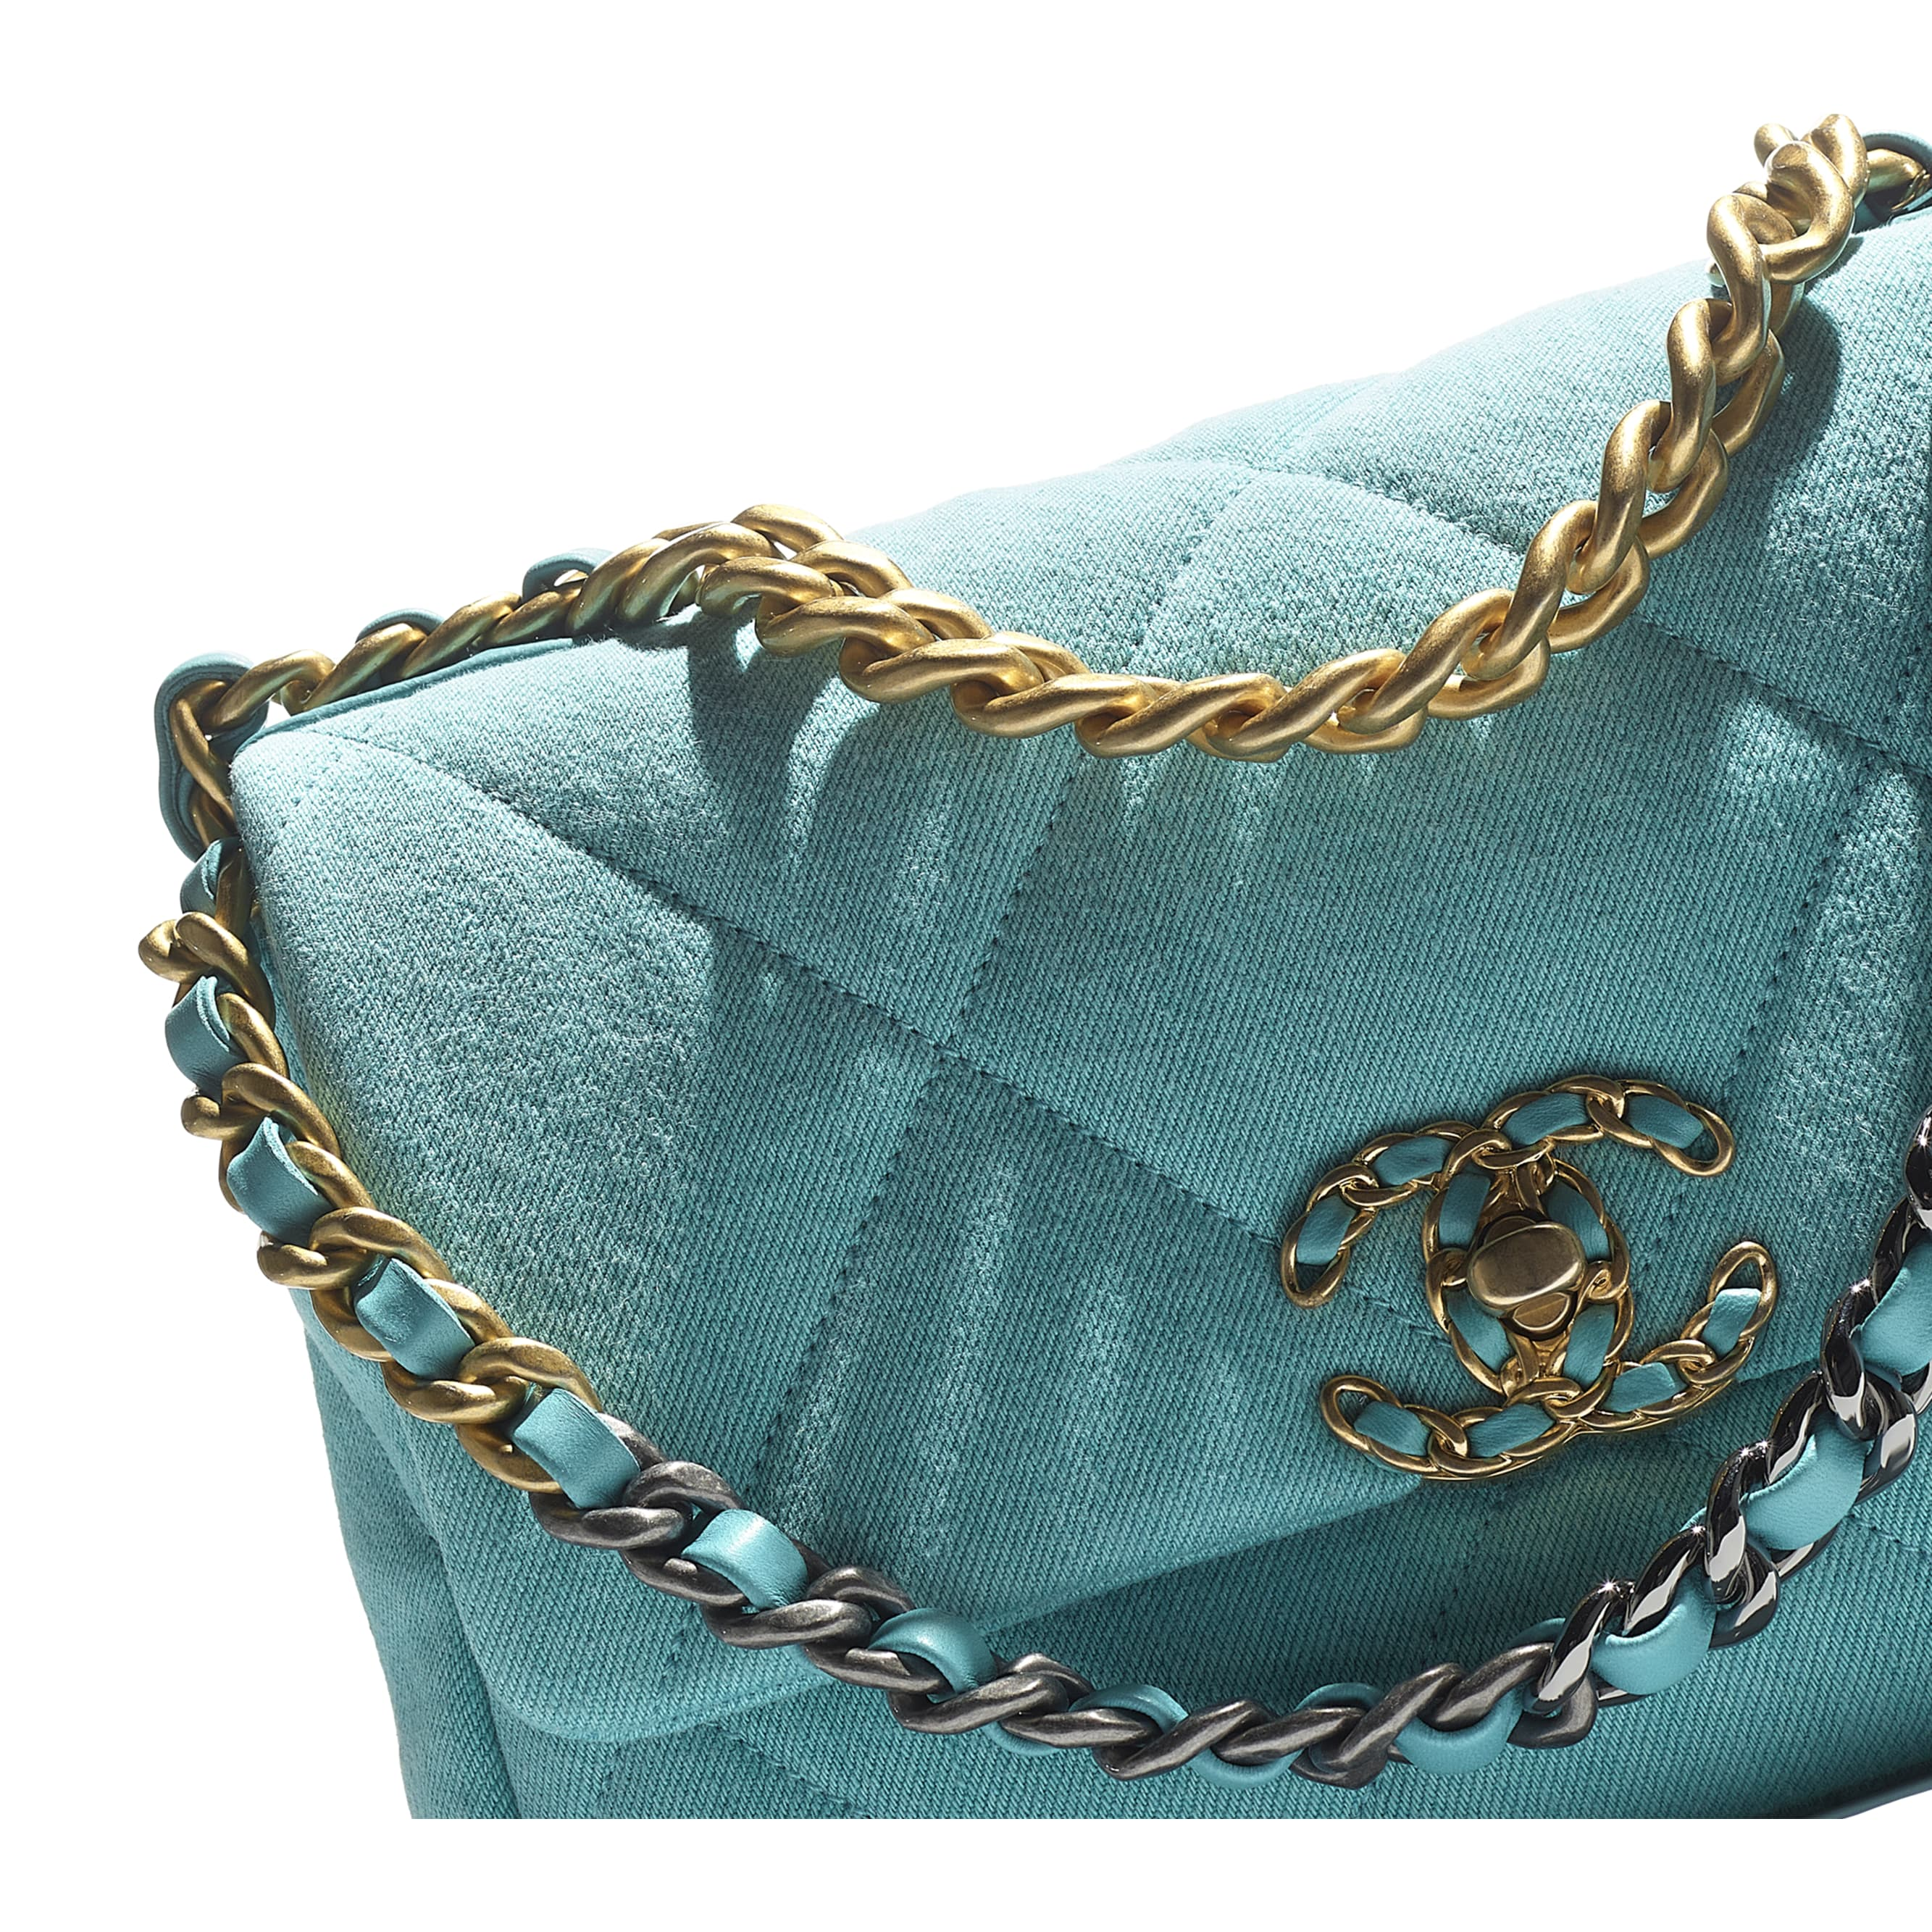 CHANEL 19 Flap Bag - Neon Blue - Denim, Calfskin, Gold-Tone, Silver-Tone & Ruthenium-Finish Metal - CHANEL - Extra view - see standard sized version